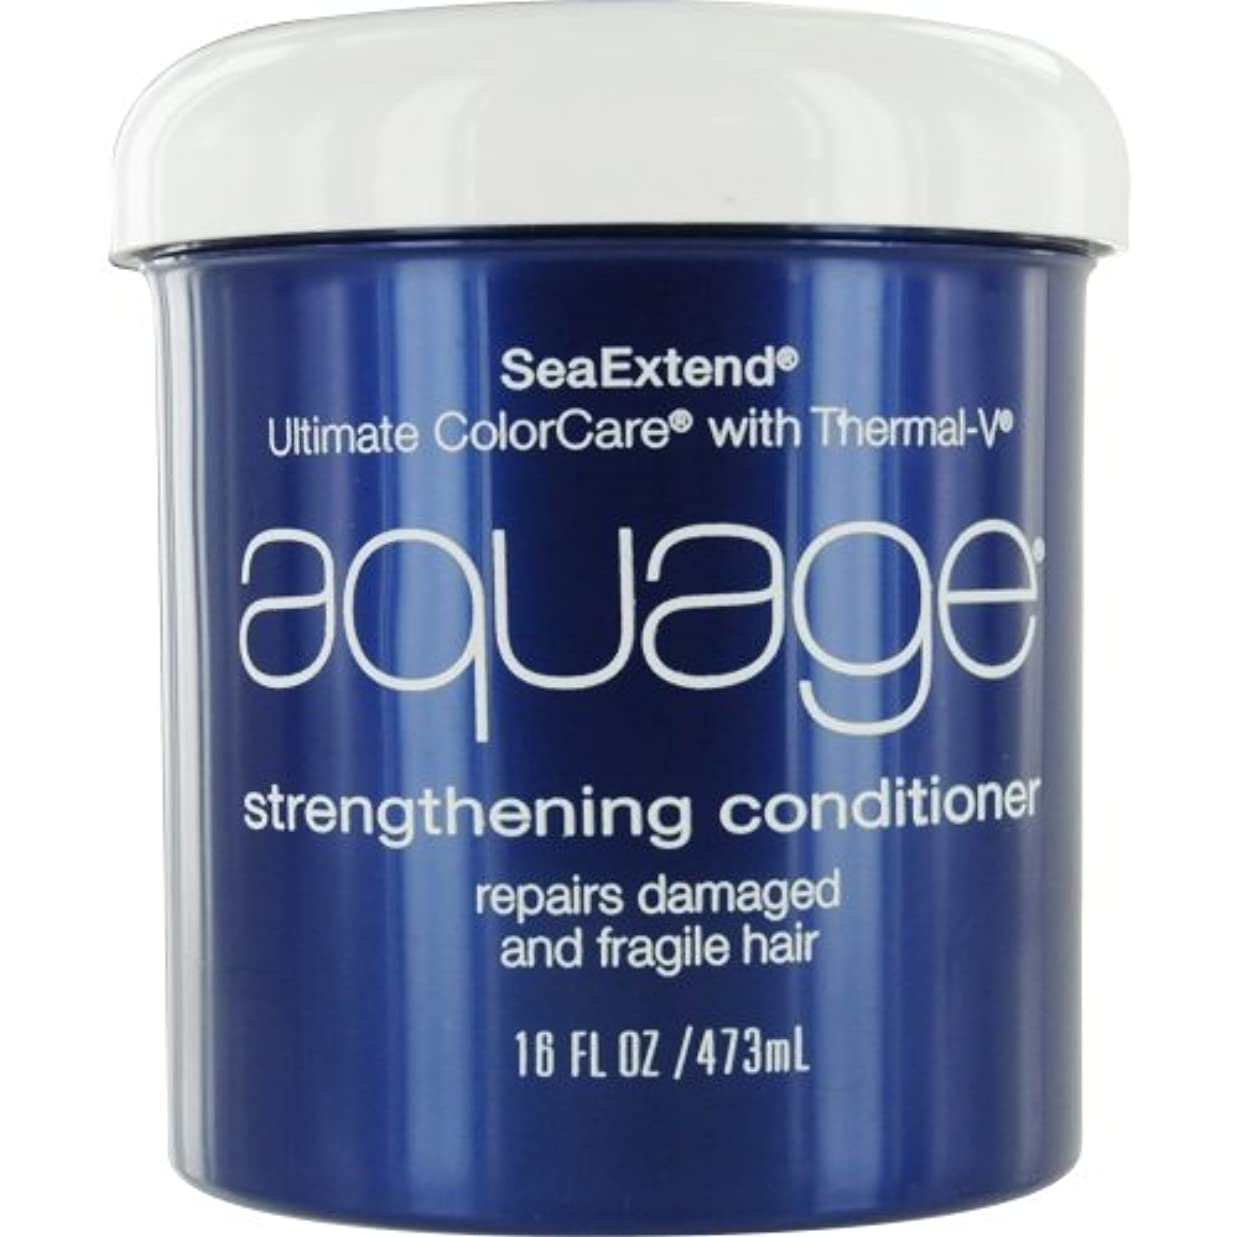 元に戻す上下する森林Seaextend Ultimate Colorcare with Thermal-V Strengthening Conditioner